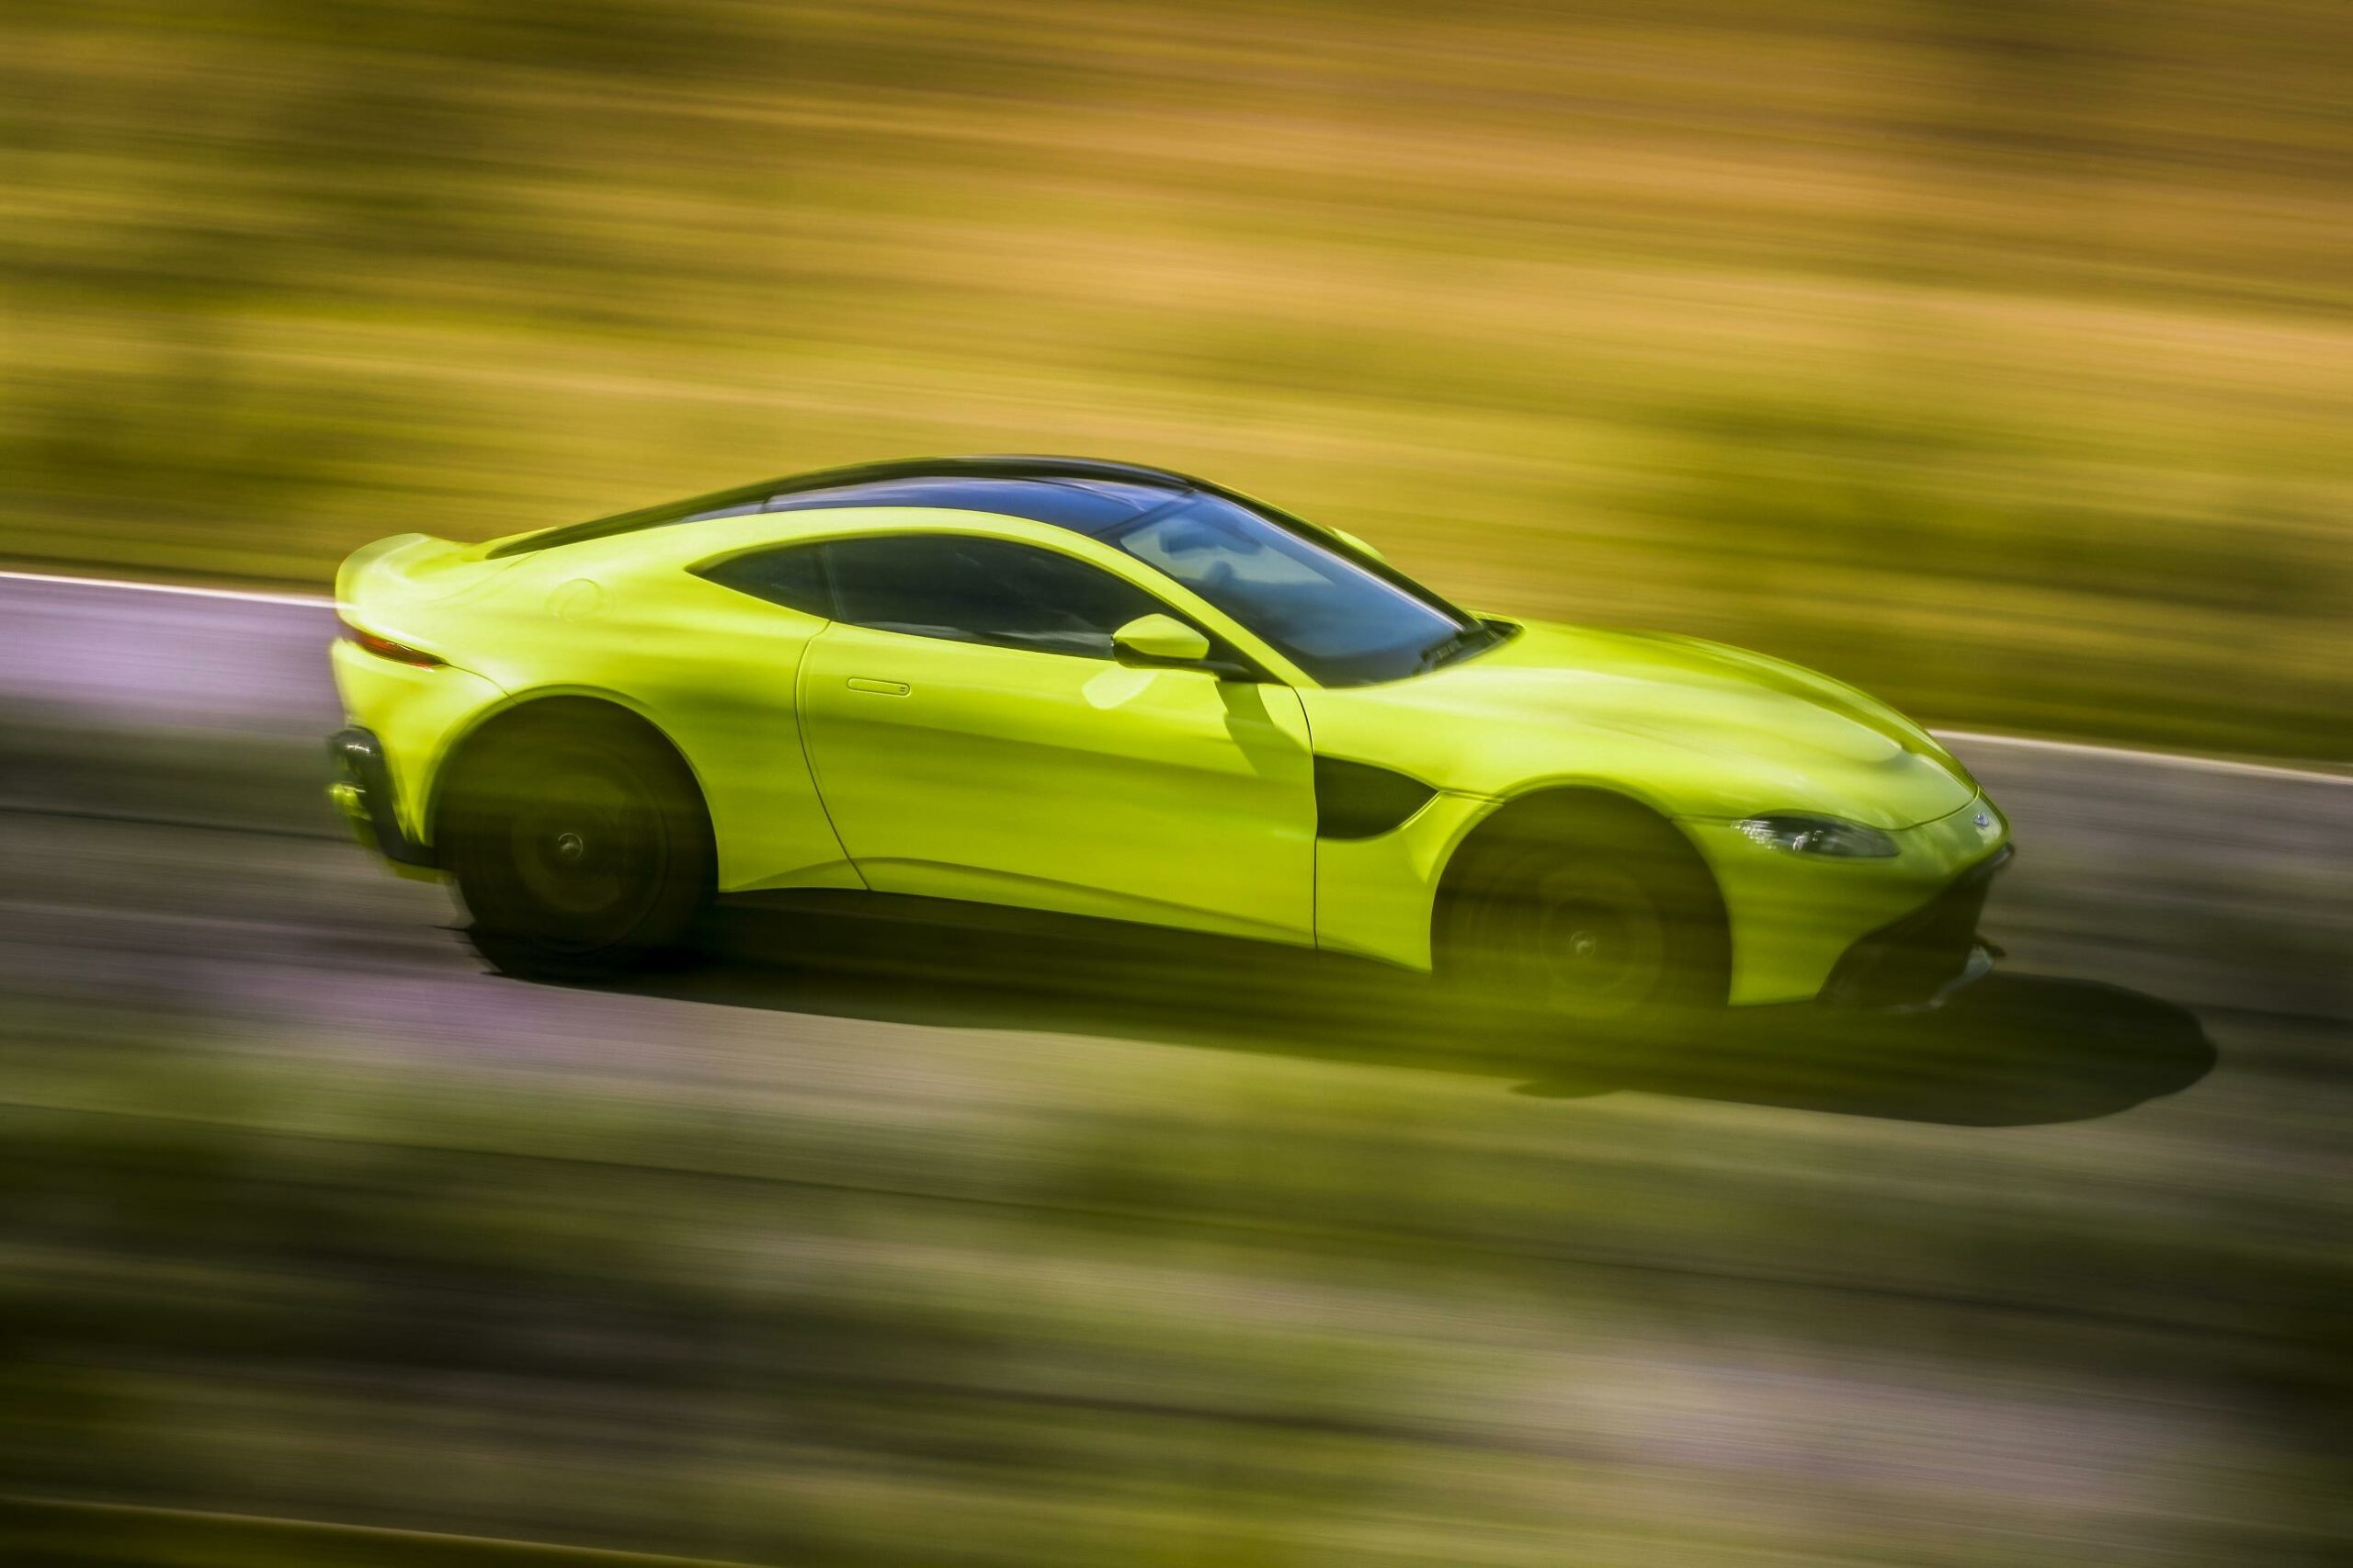 A side view of a neon yellow Aston Martin V8 Vantage driving down a road